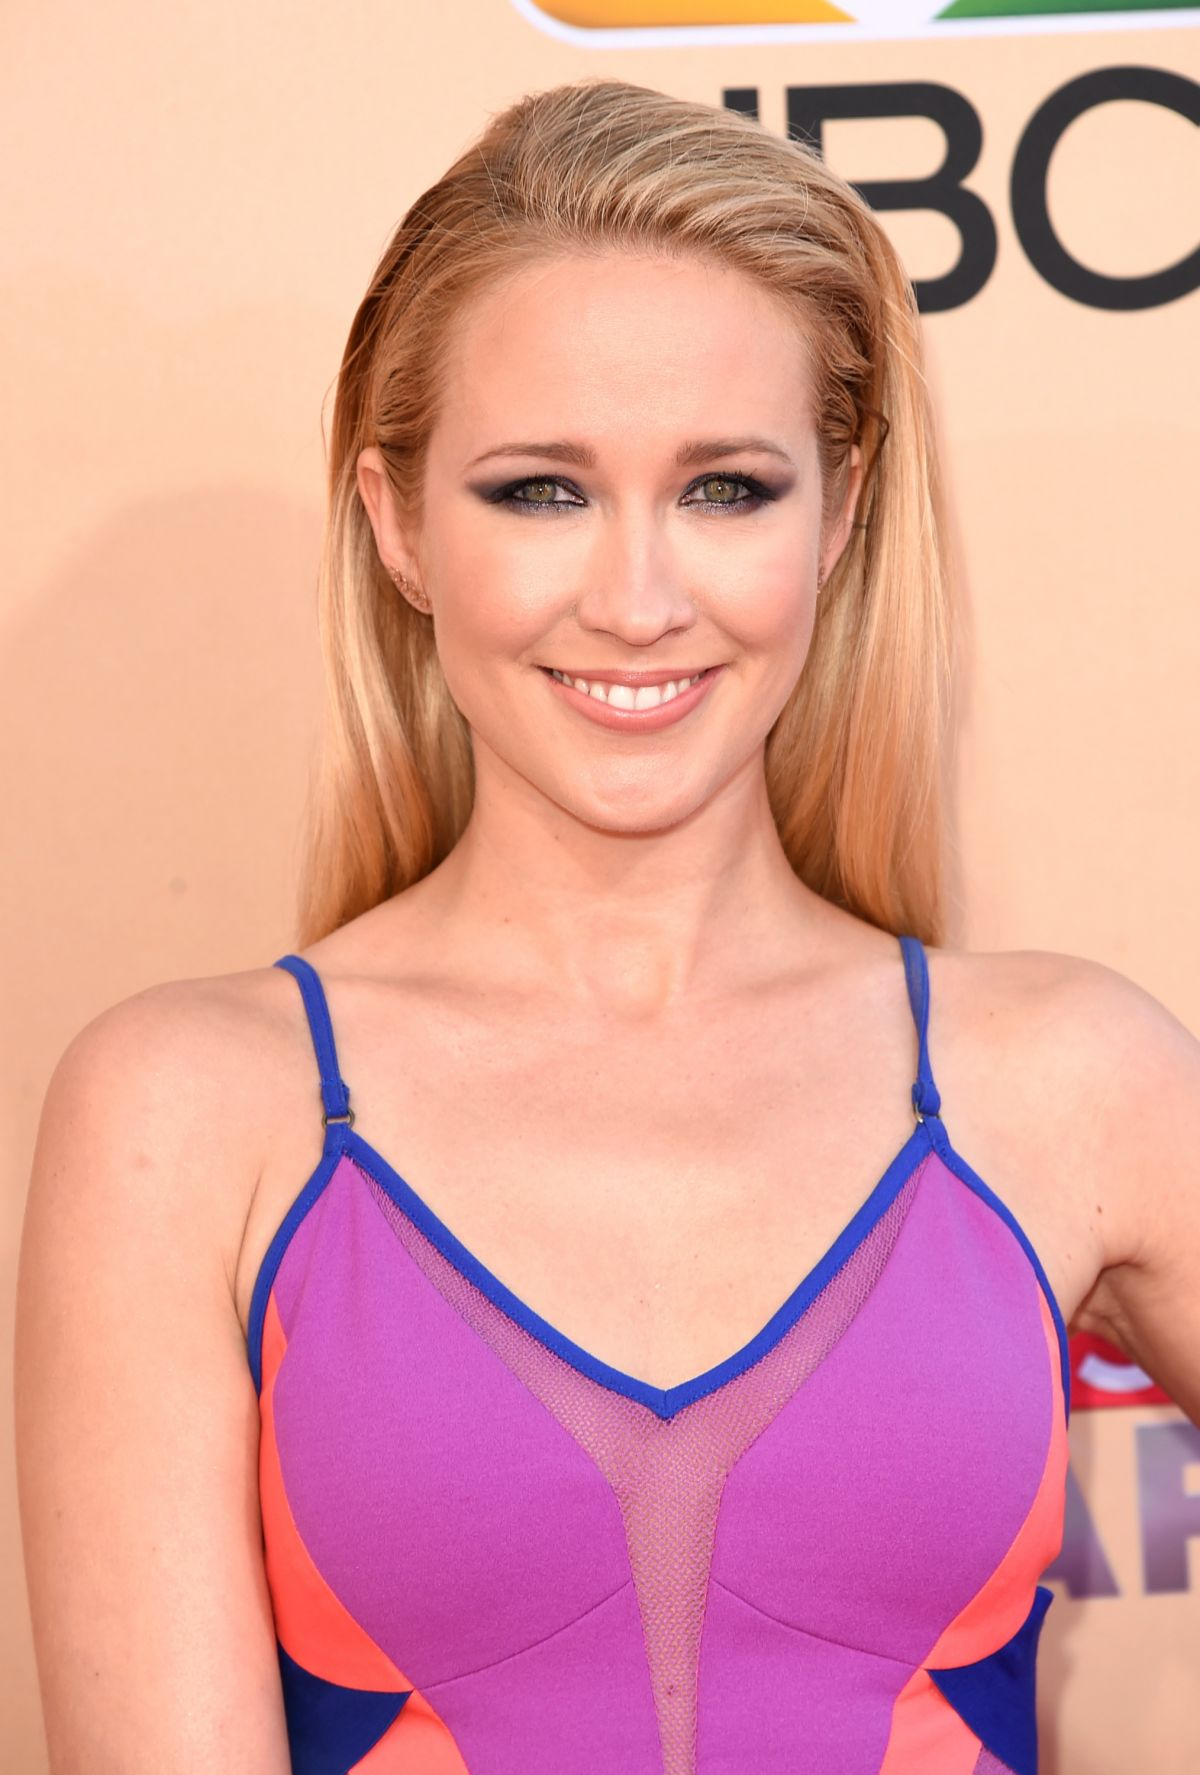 anna camp wedding dressanna camp snapchat, anna camp and skylar astin, anna camp height, anna camp dancing, anna camp imdb, anna camp films, anna camp wedding ring, anna camp engagement ring, anna camp glee, anna camp instagram, anna camp how i met your mother, anna camp skylar astin wedding, anna camp photoshoot, anna camp wedding dress, anna camp, anna camp pitch perfect 2, anna camp and skylar astin married, anna camp skylar astin engaged, anna camp twitter, anna camp equus